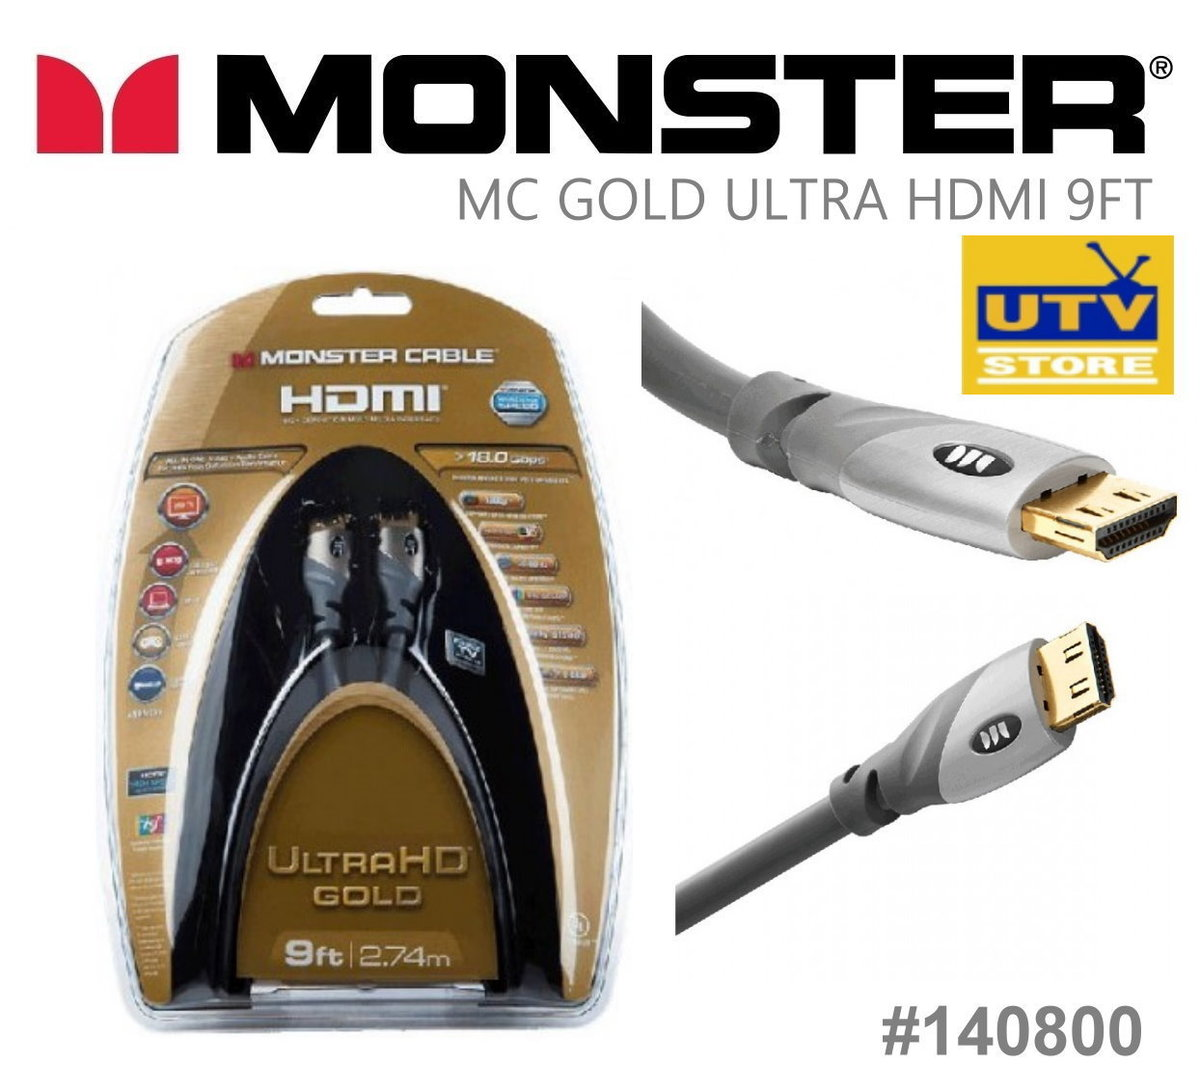 140800 UltraHD Gold HDMI Cable 2.74m / 9ft